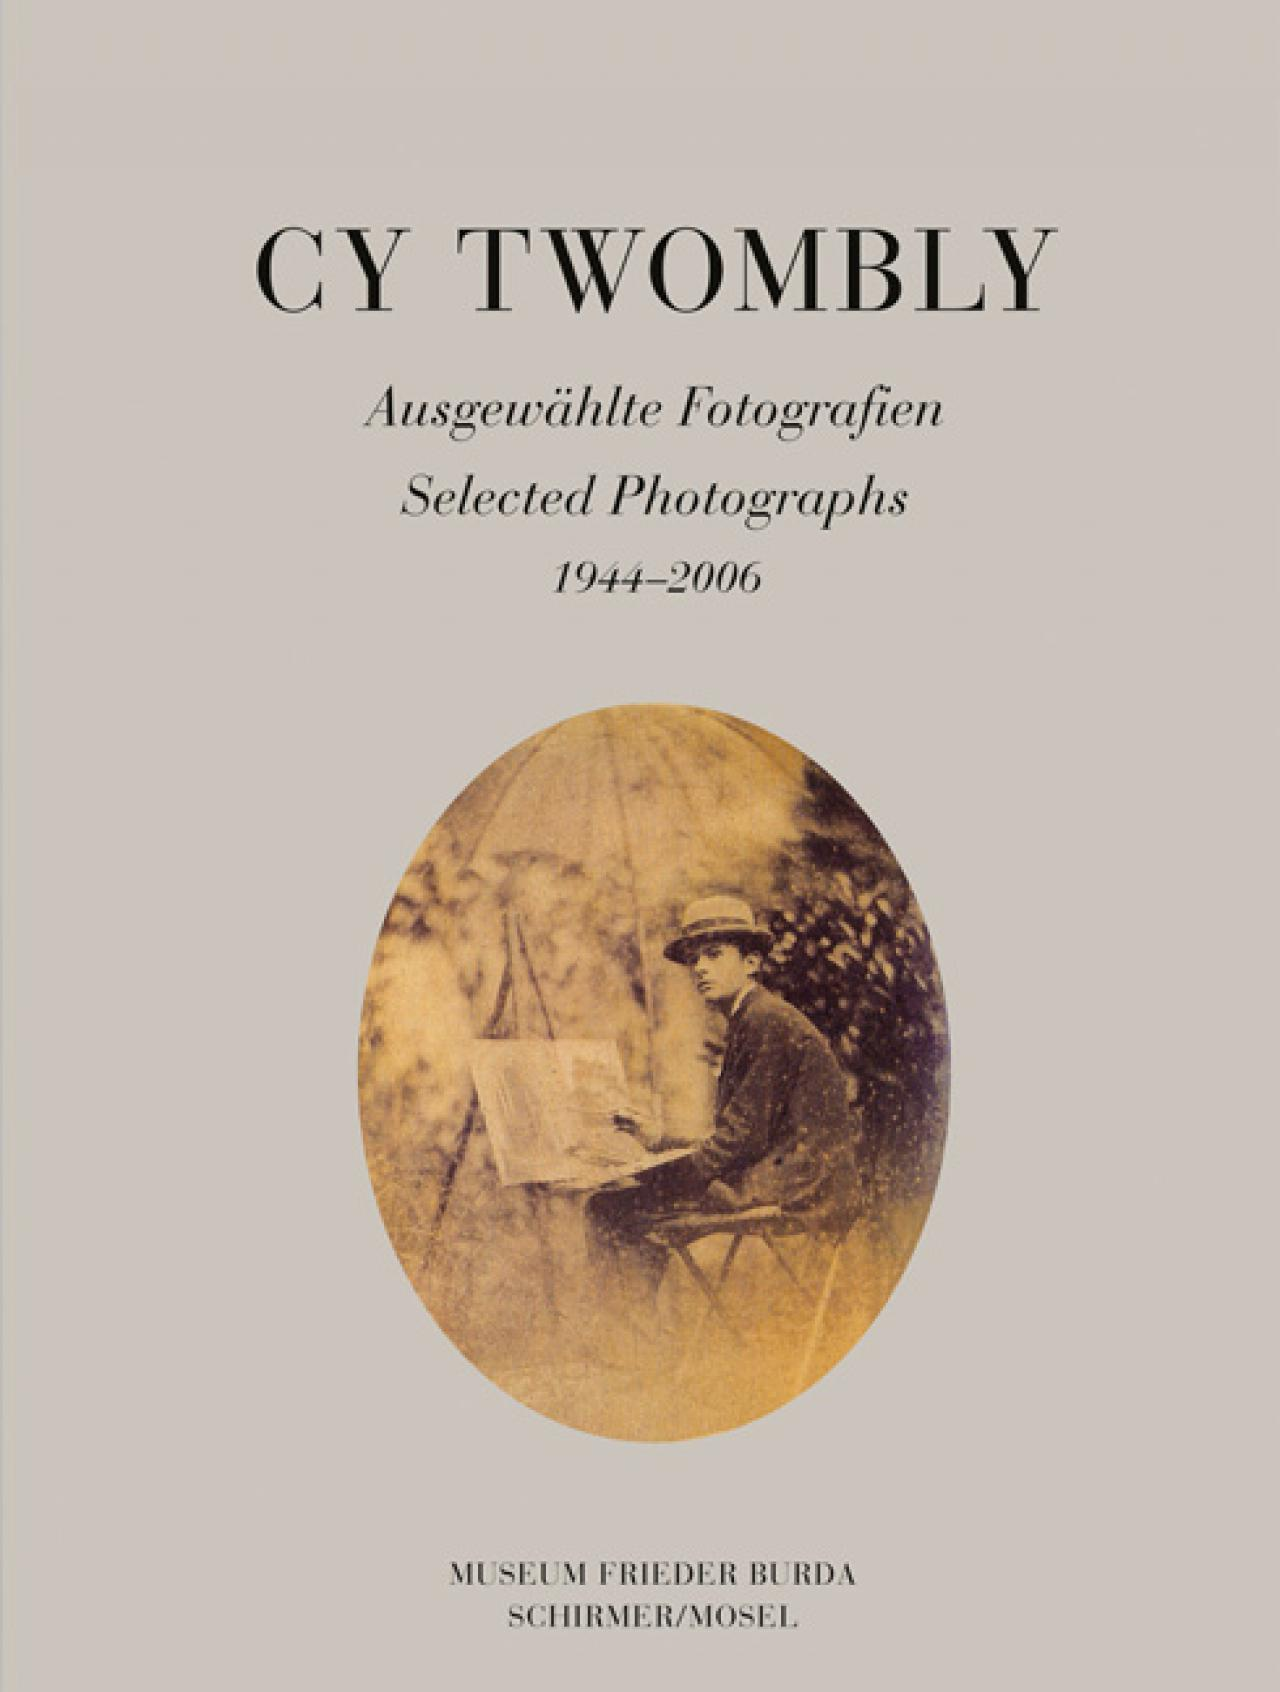 Cy Twombly: Selected Photographs 1944-2006